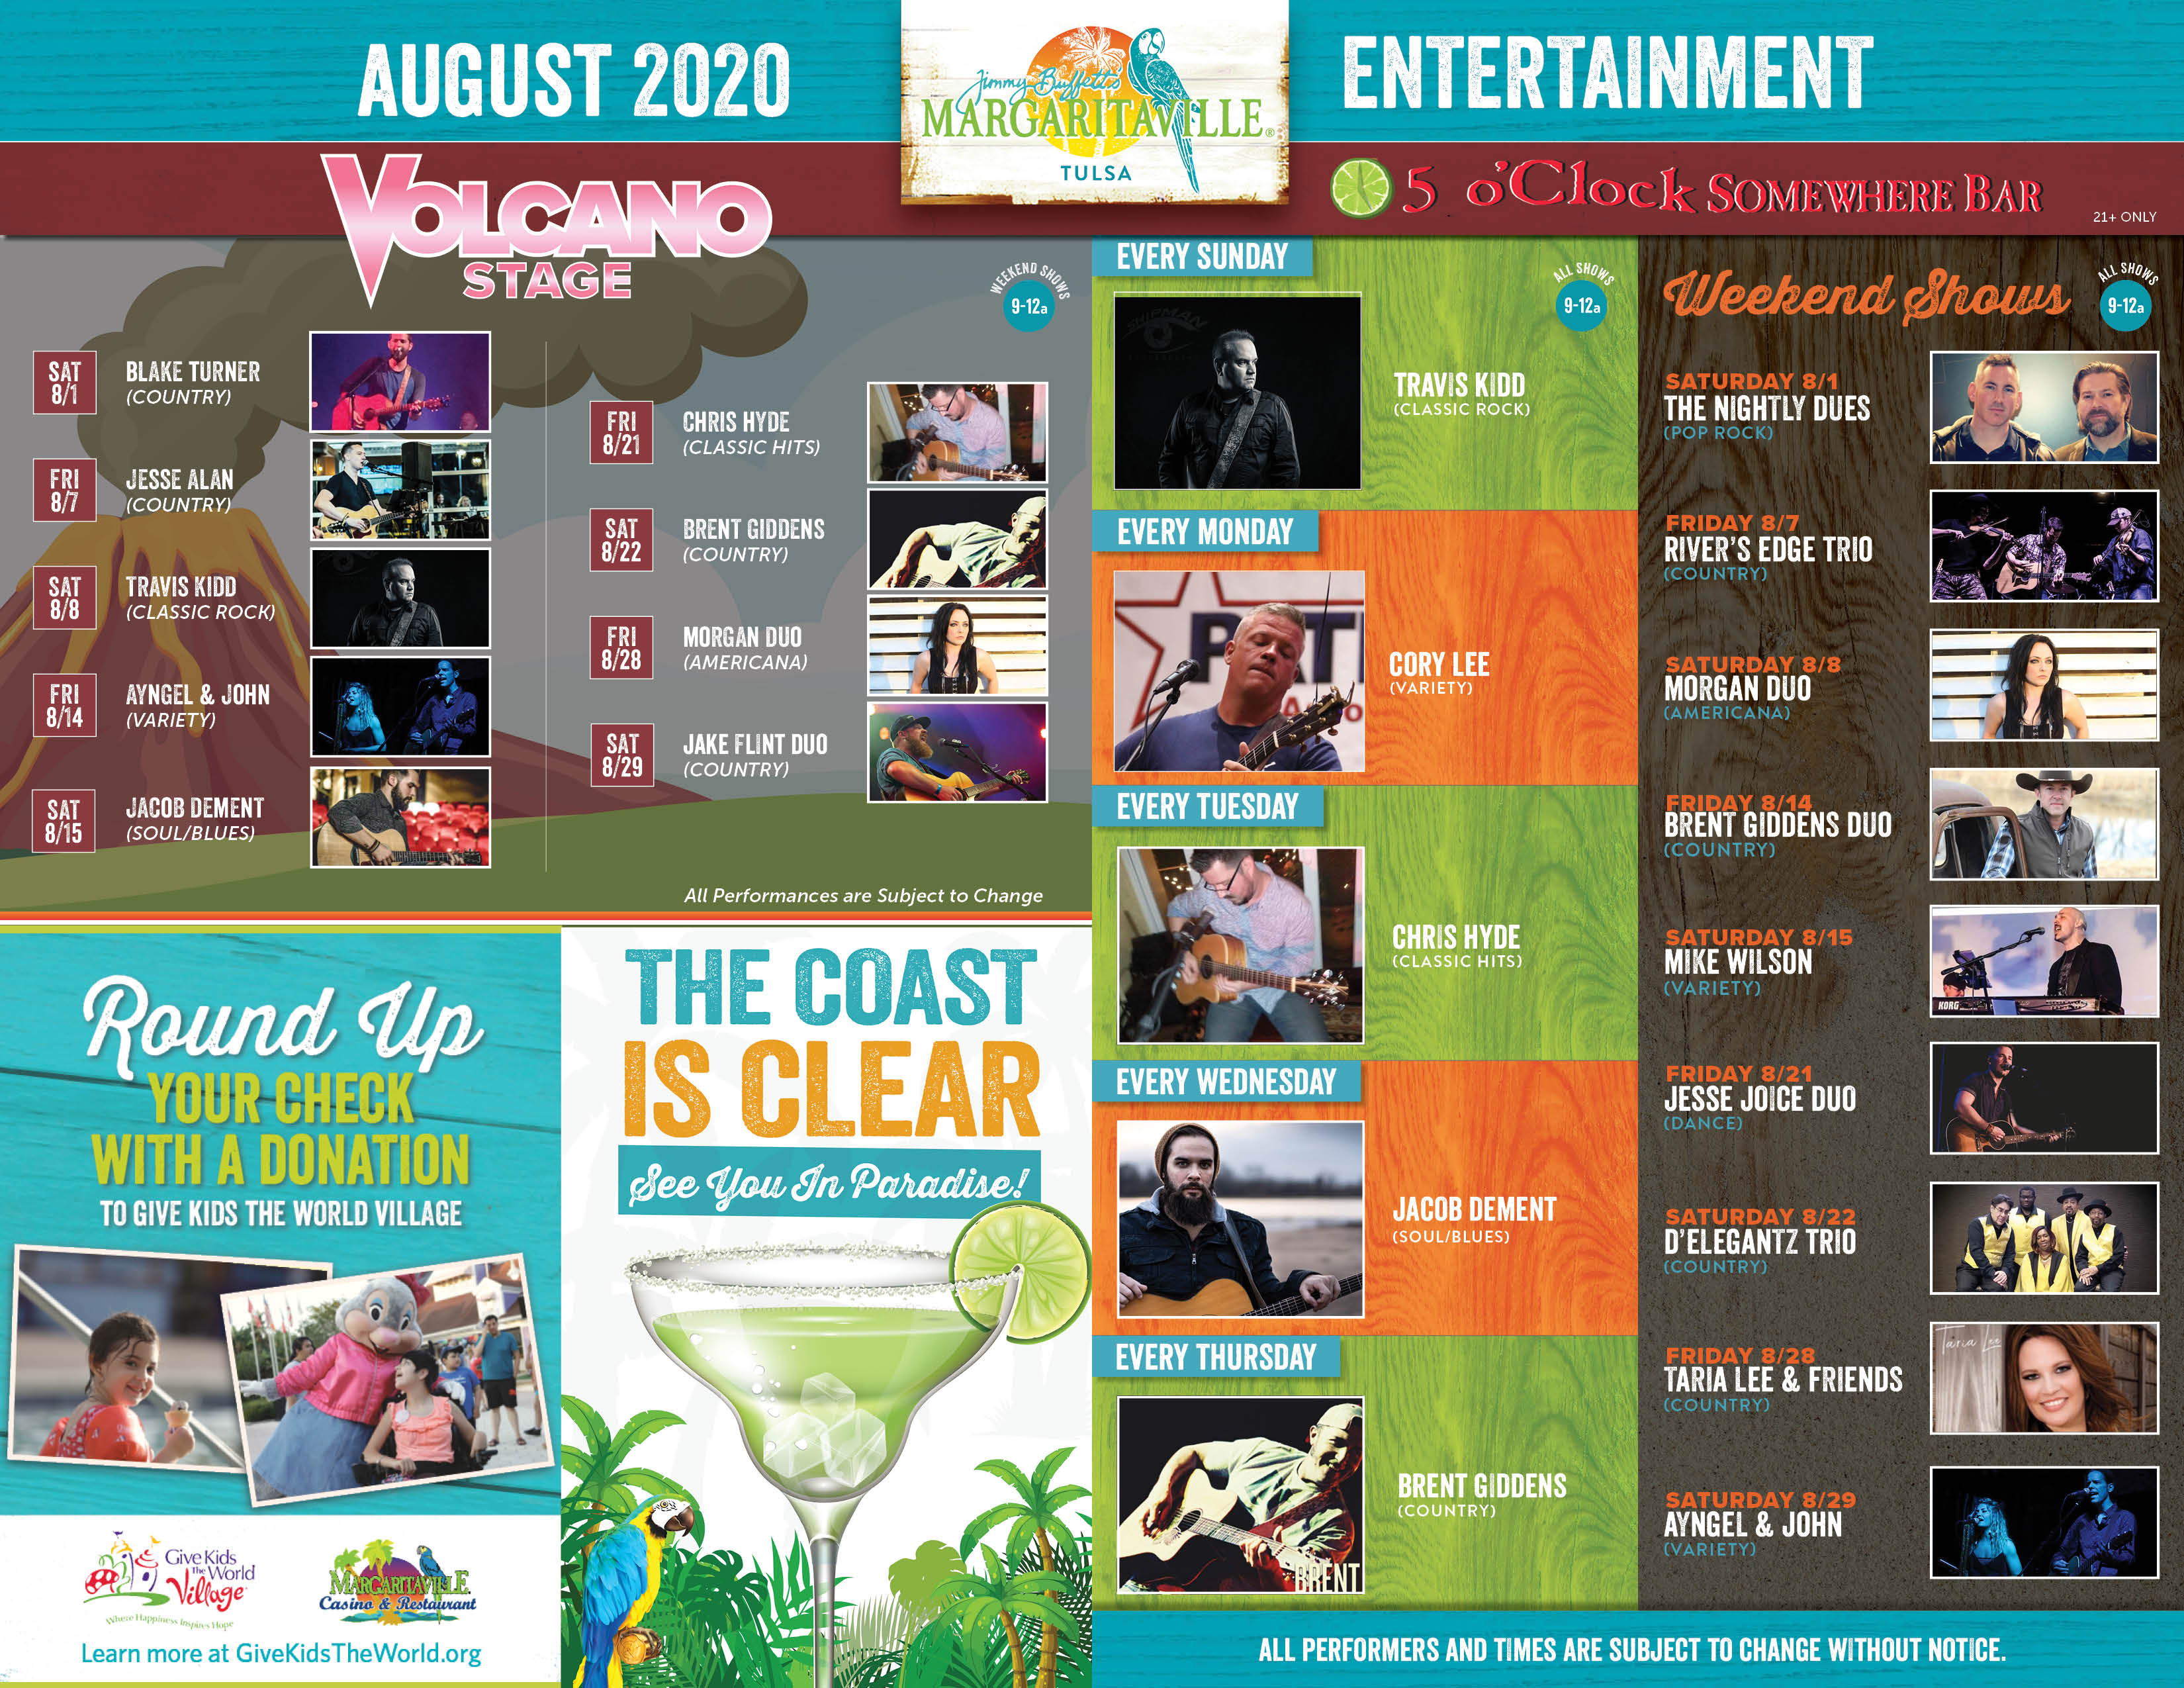 Margaritaville Tulsa August 2020 Calendar of Events. Visually impaired customers please call for assistance or read next tab